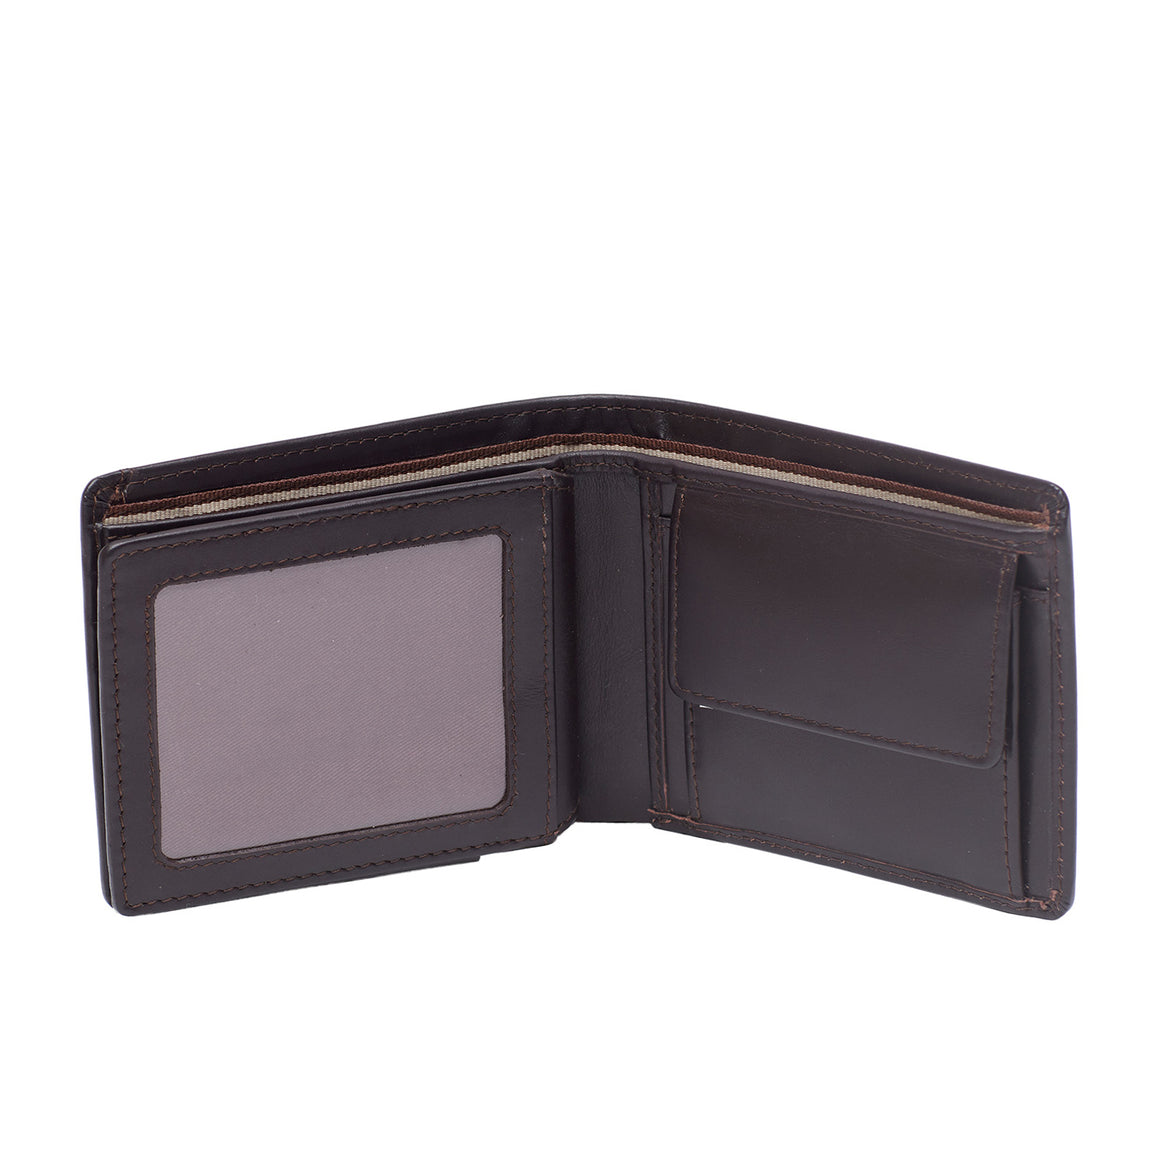 WT 0027 - TOHL  GREKO MEN'S WALLET - DARK BROWN